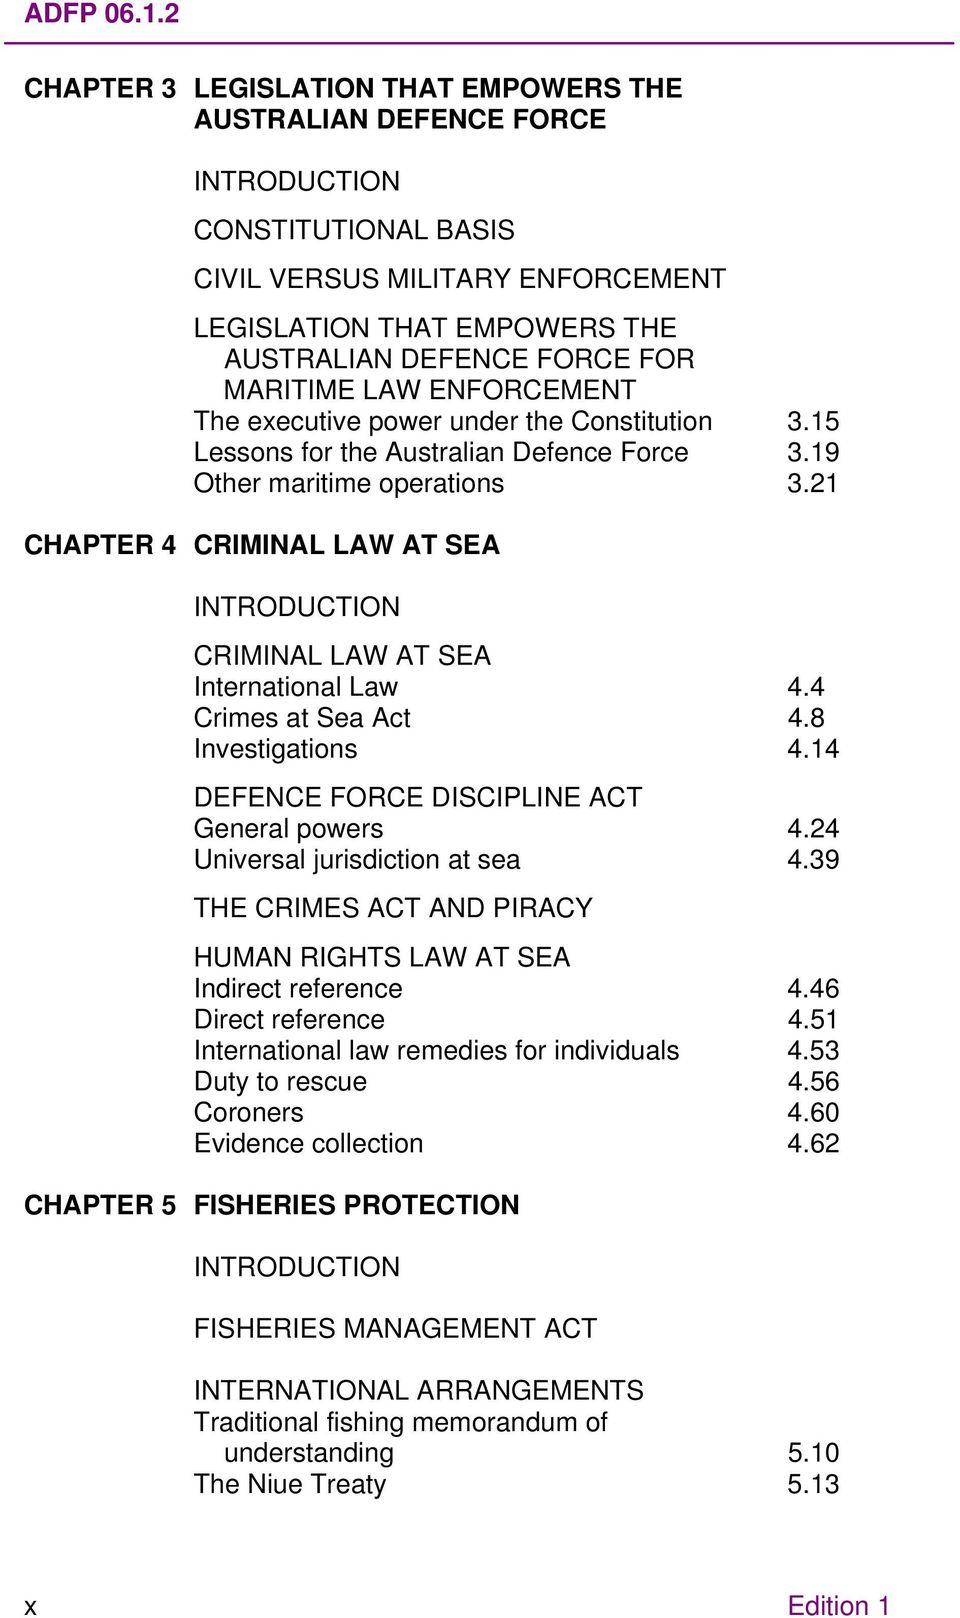 MARITIME LAW ENFORCEMENT The executive power under the Constitution 3.15 Lessons for the Australian Defence Force 3.19 Other maritime operations 3.